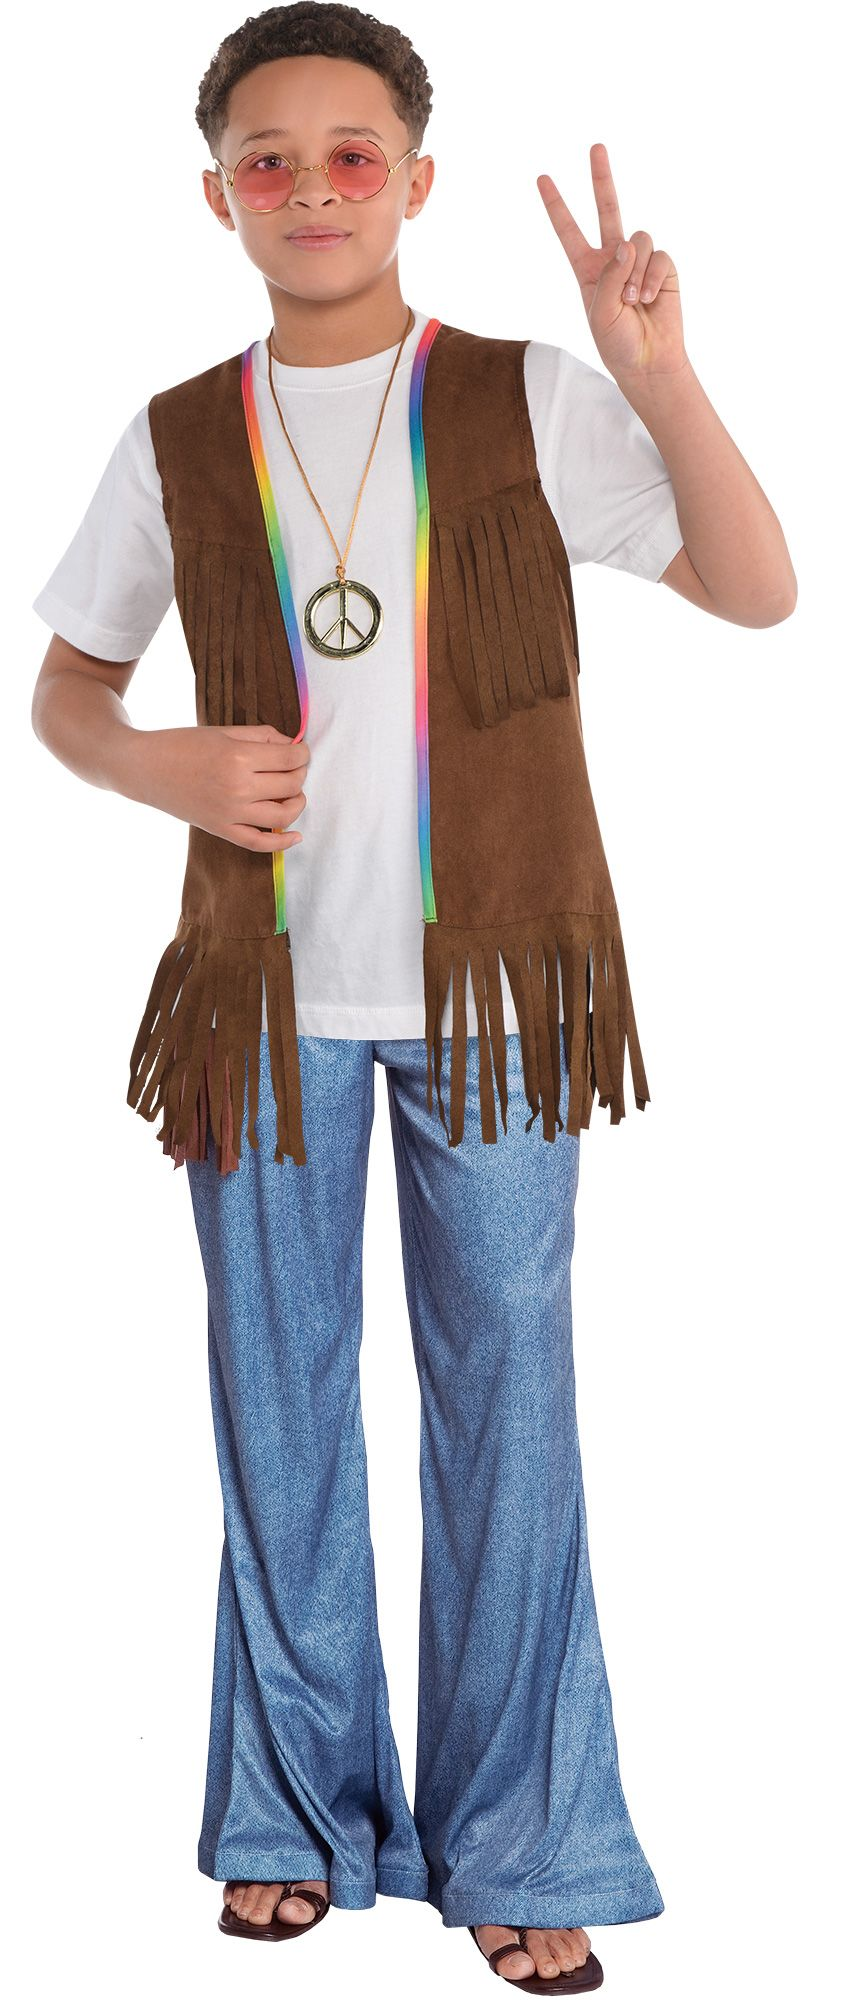 Create Your Own Boysu0026#39; Hippie Costume Accessories | Party City